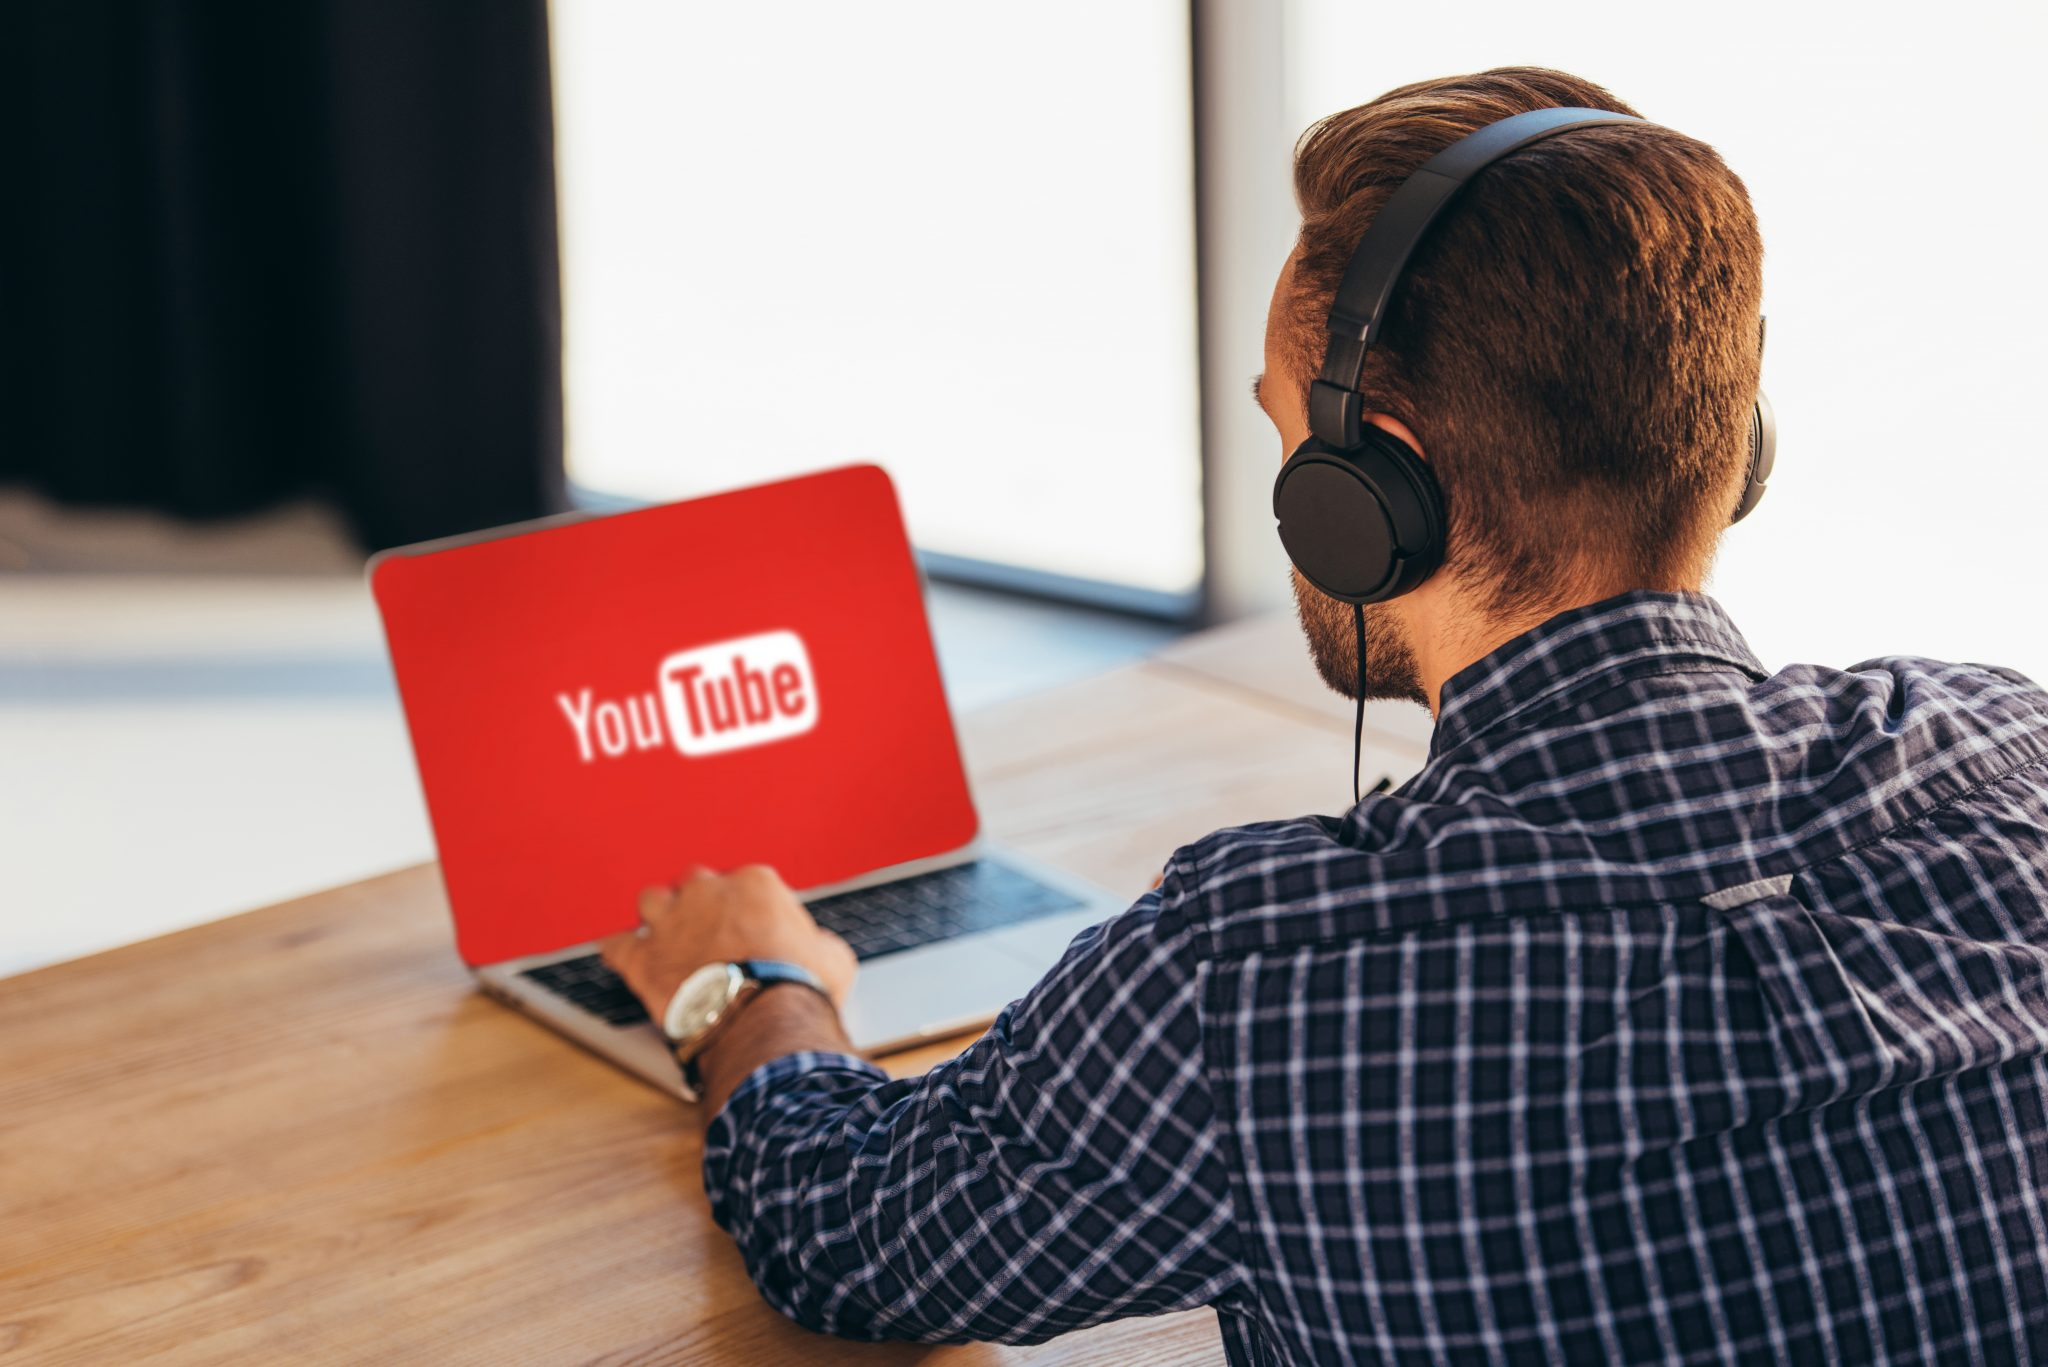 partial view of man in headphones using laptop with youtube logo on screen in office